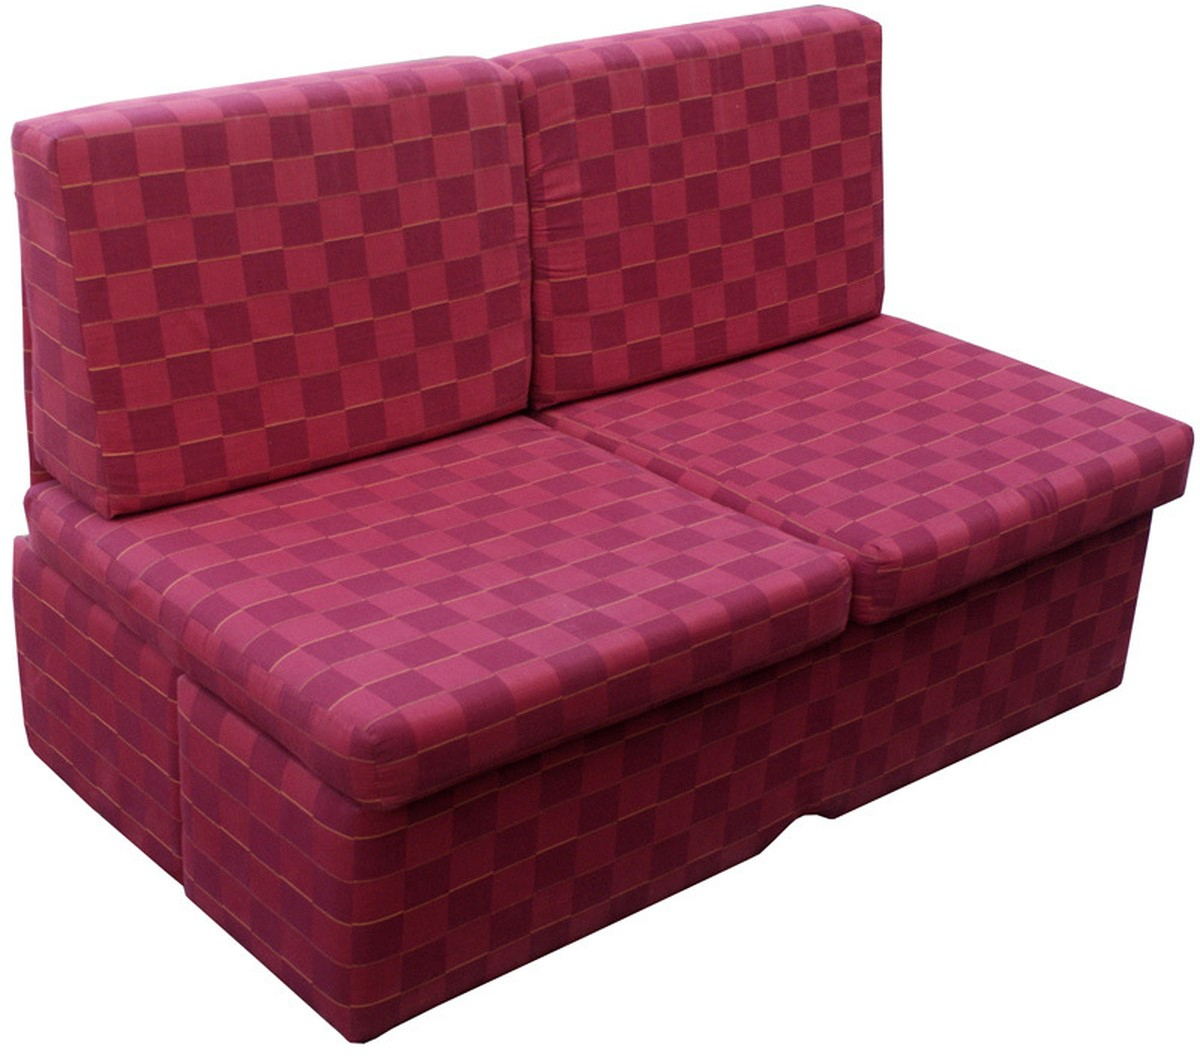 Secondhand websites index page beds very comfy red for Comfy couches for sale